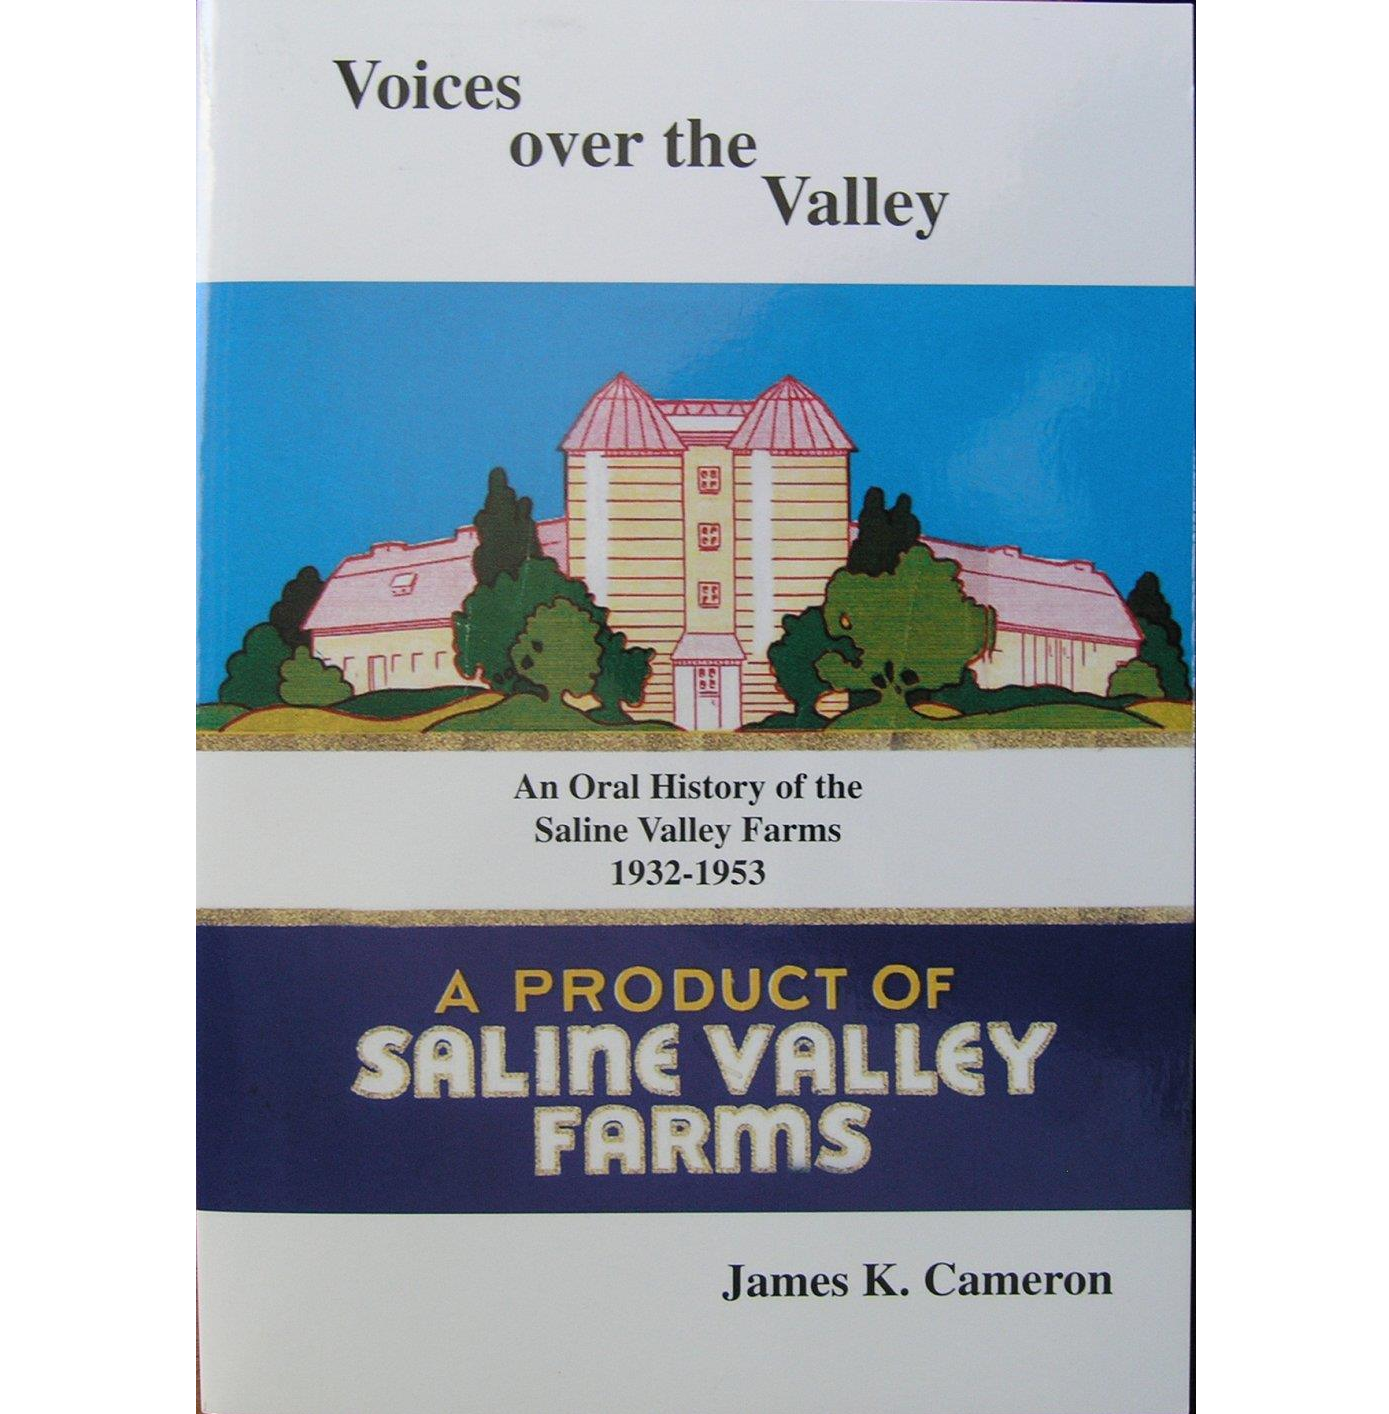 VOICES OVER THE VALLEY